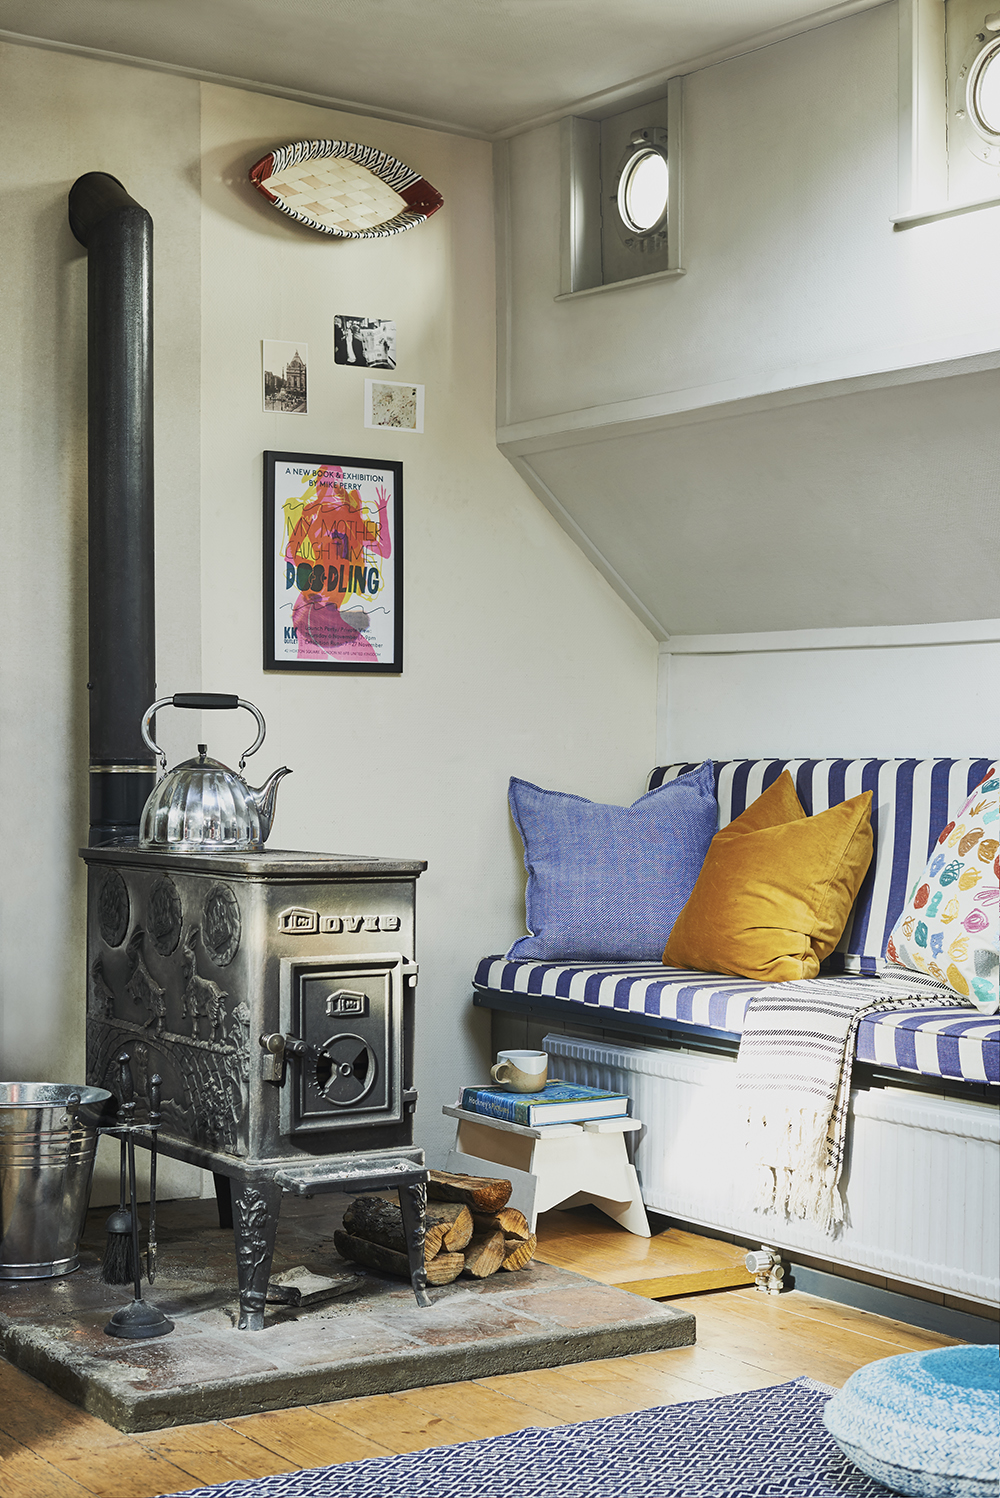 wood-burning stove in London house boat